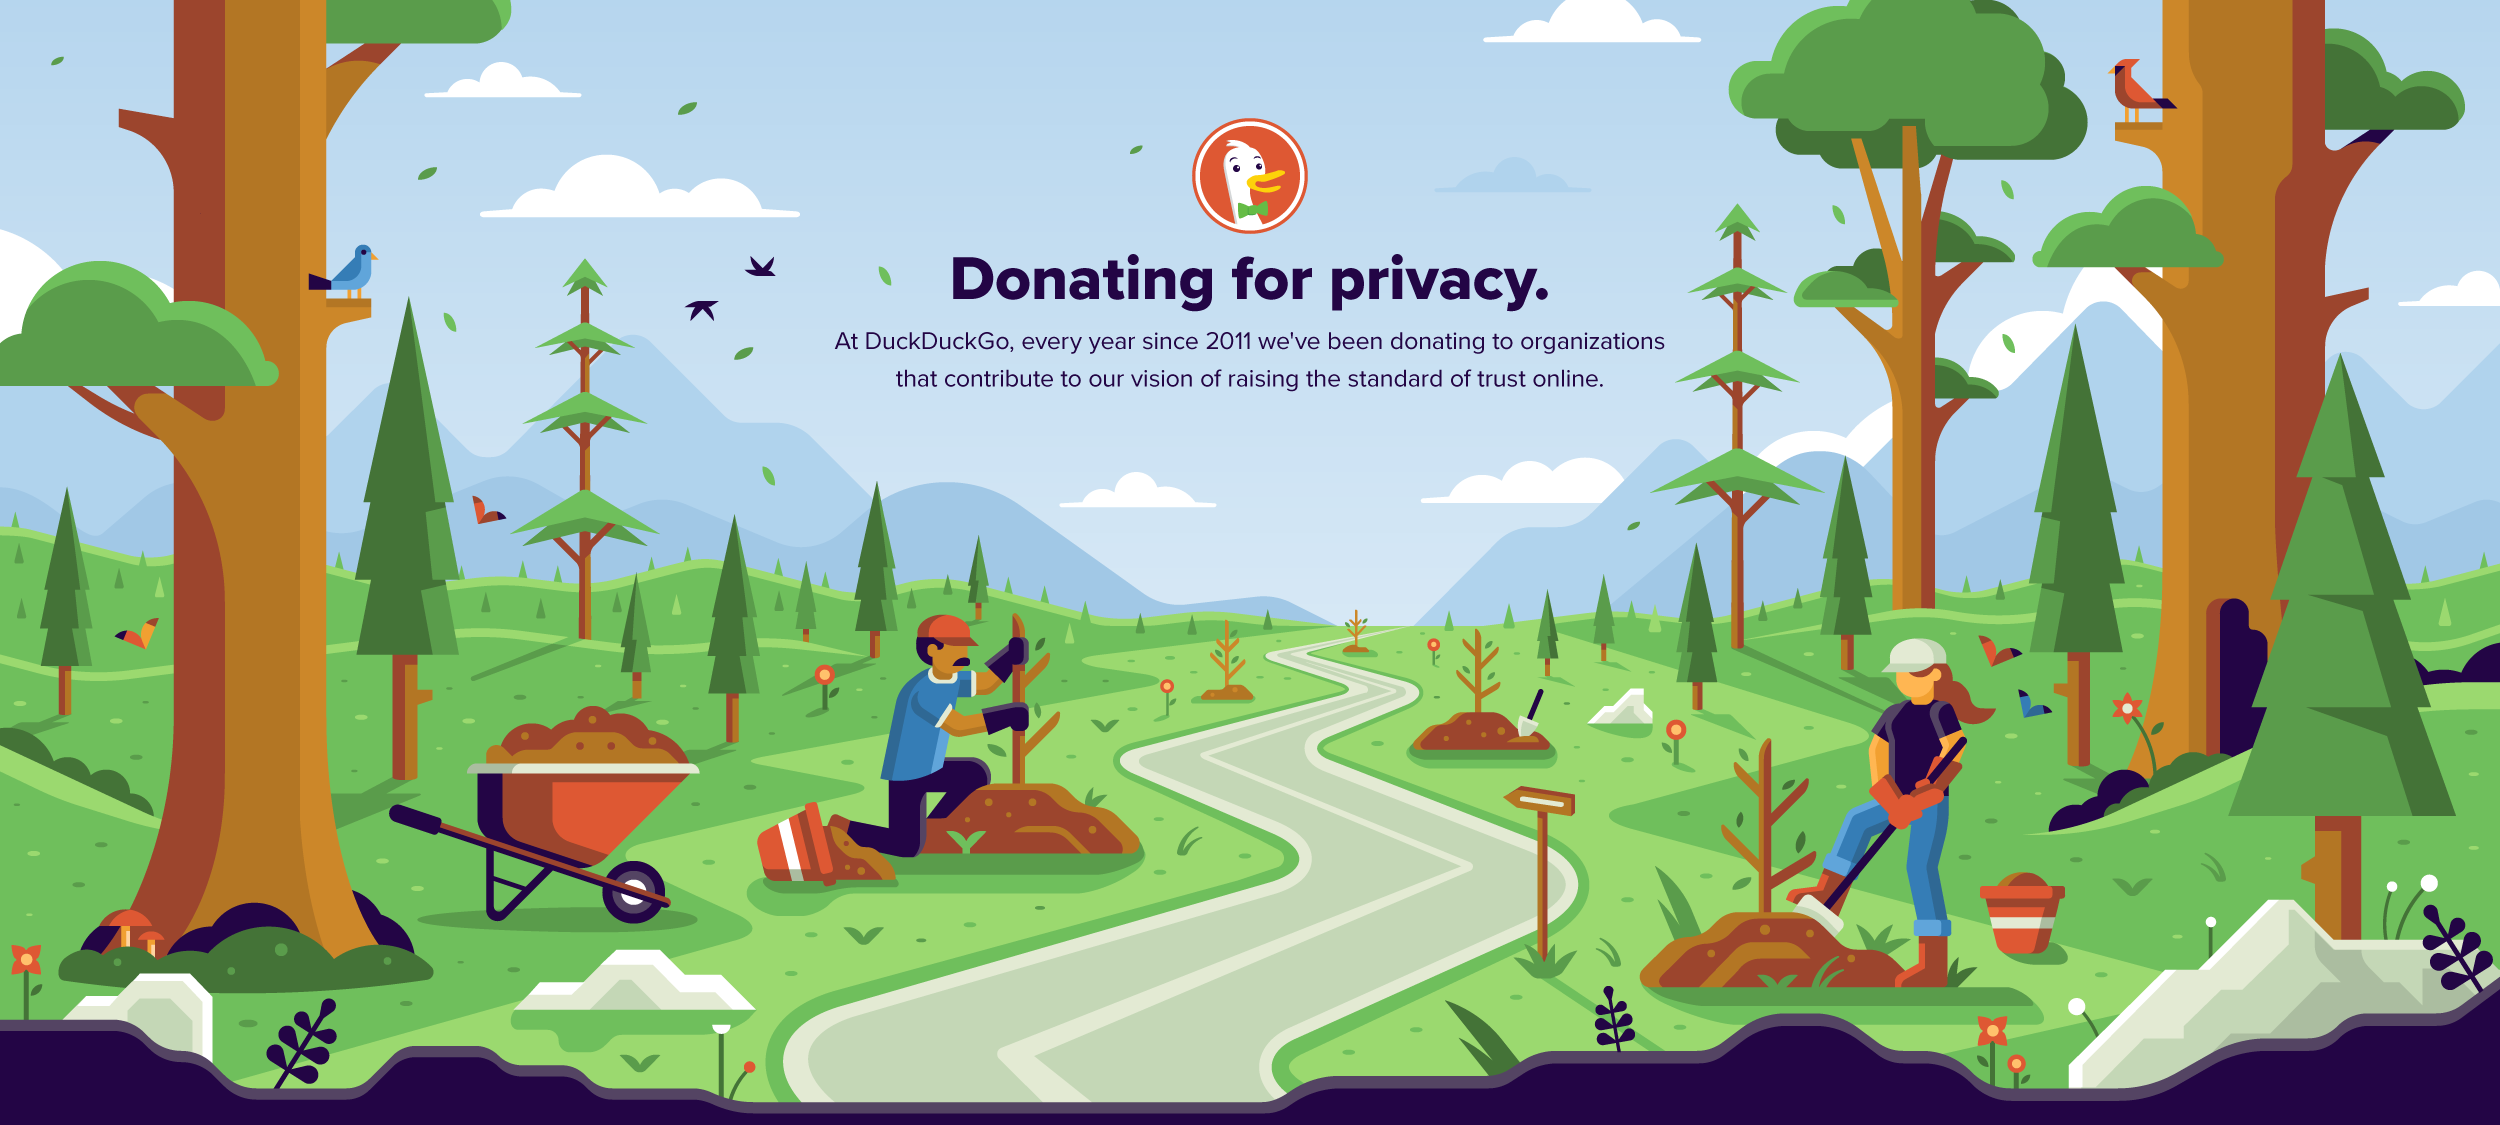 Matt Anderson DuckDuckGo hero illustration donating and planting trees.